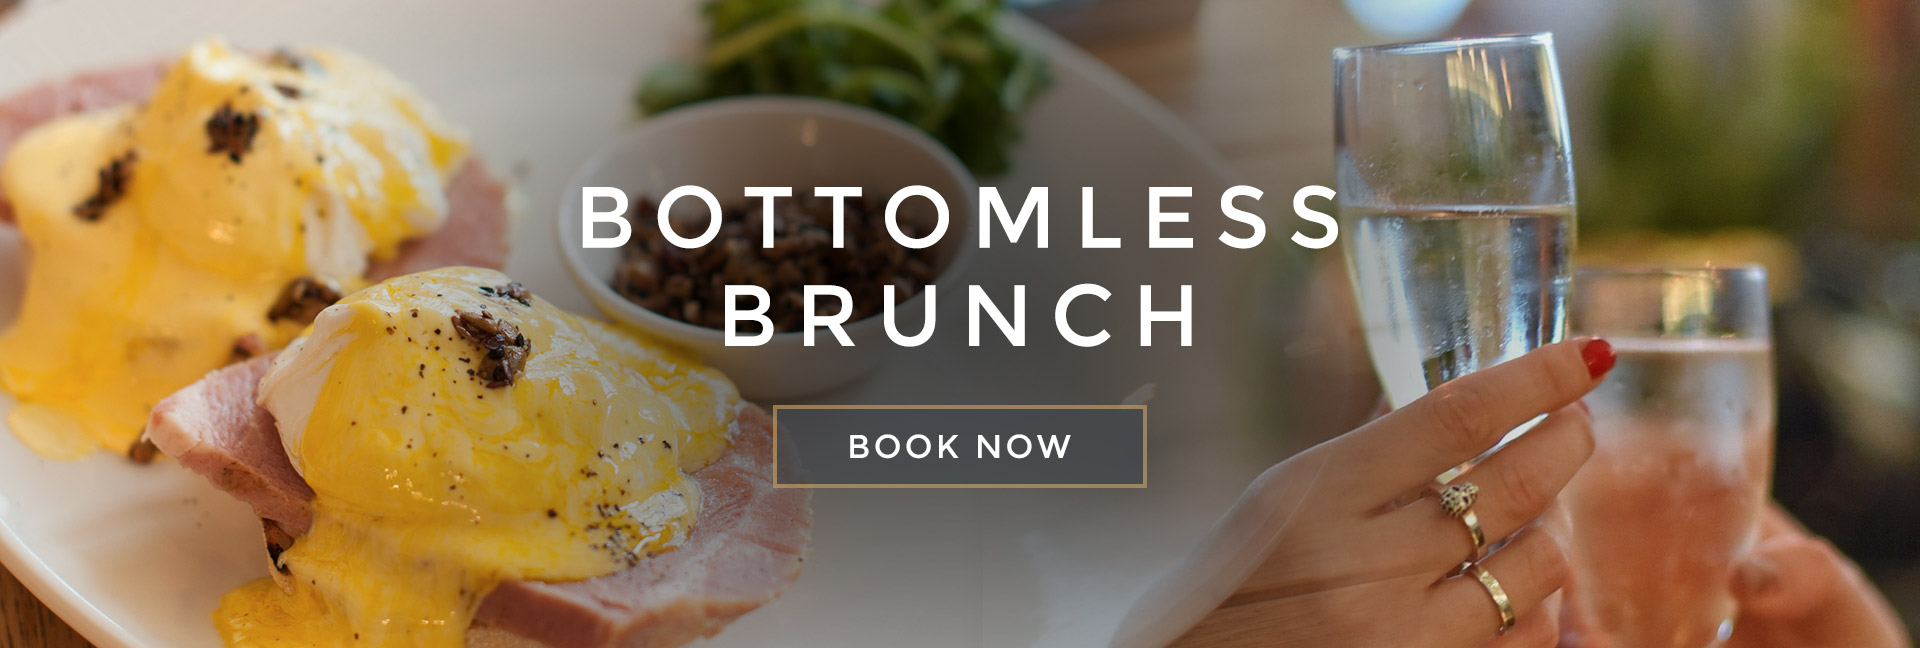 Bottomless Brunch at All Bar One York - Book now